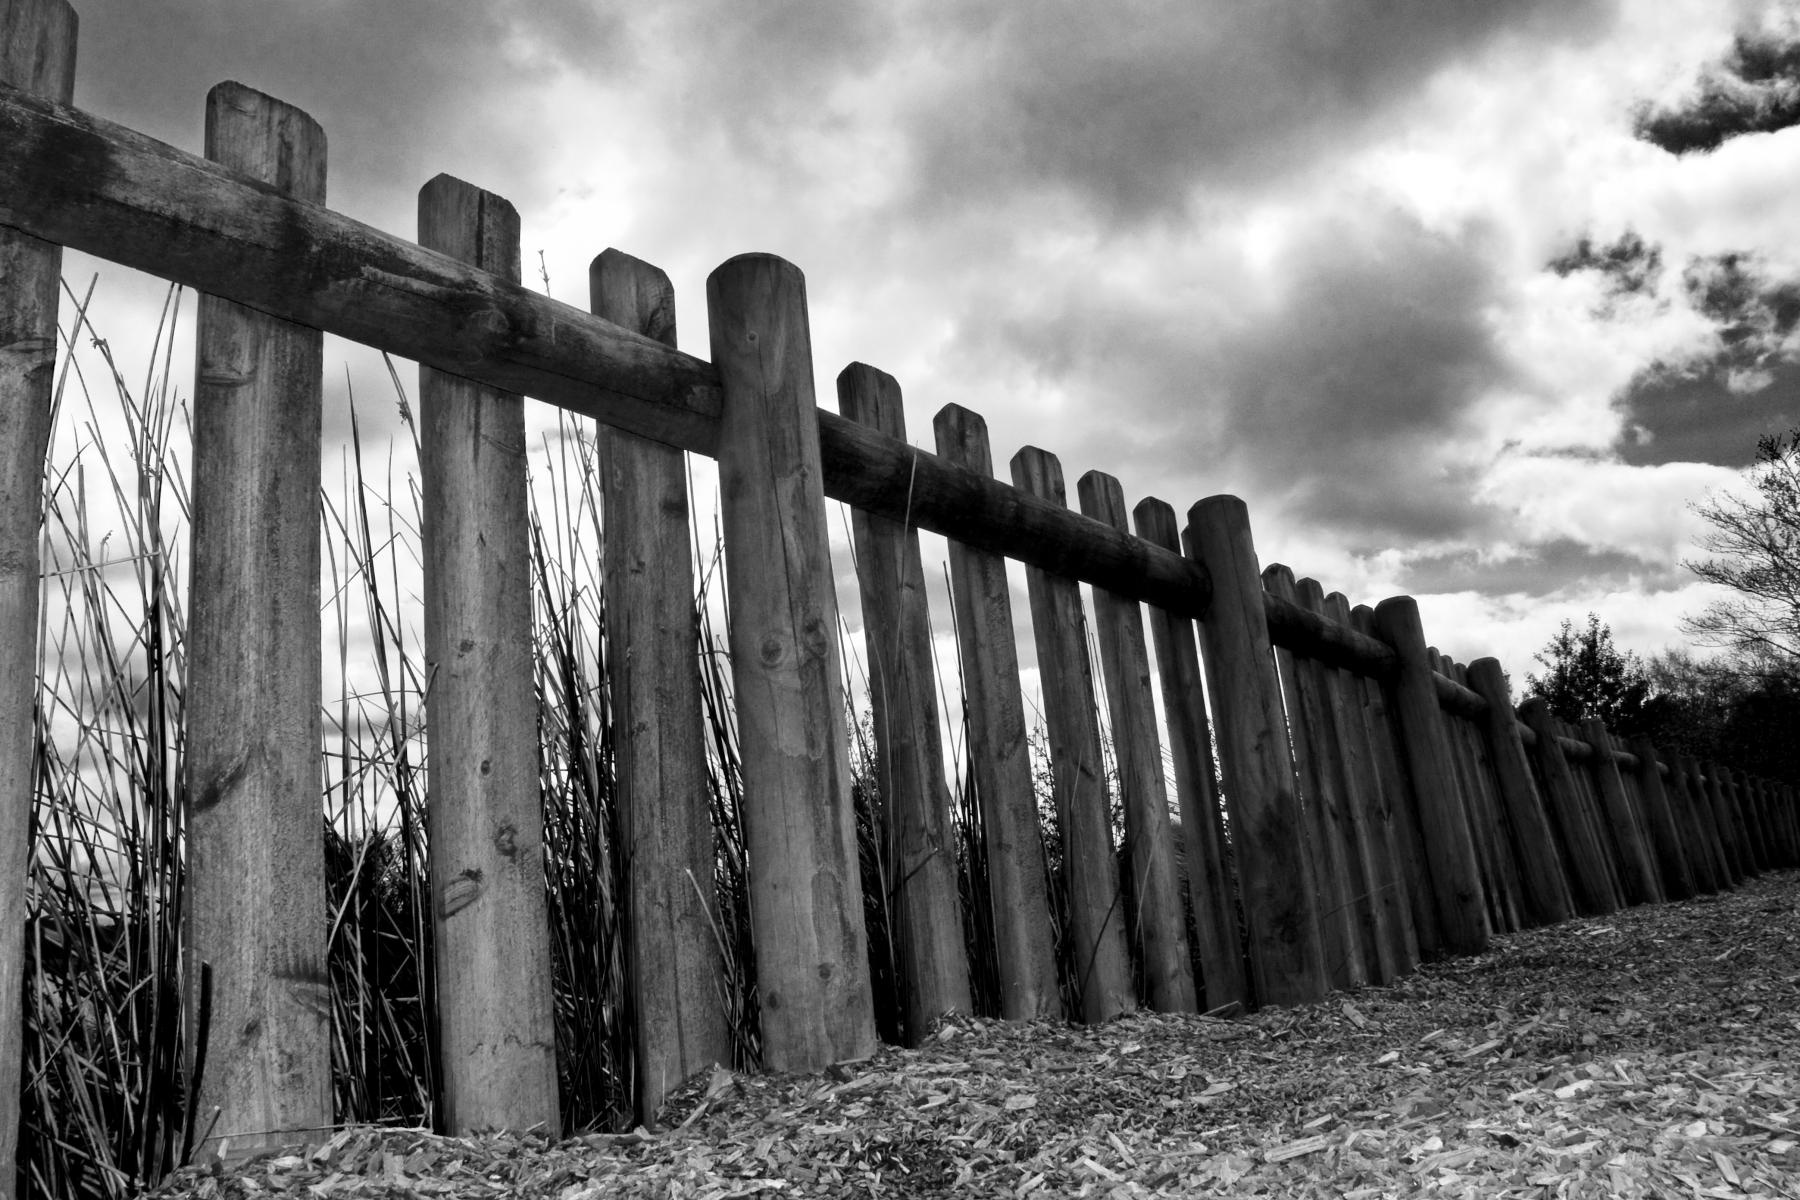 Fence at Llyn Brenig